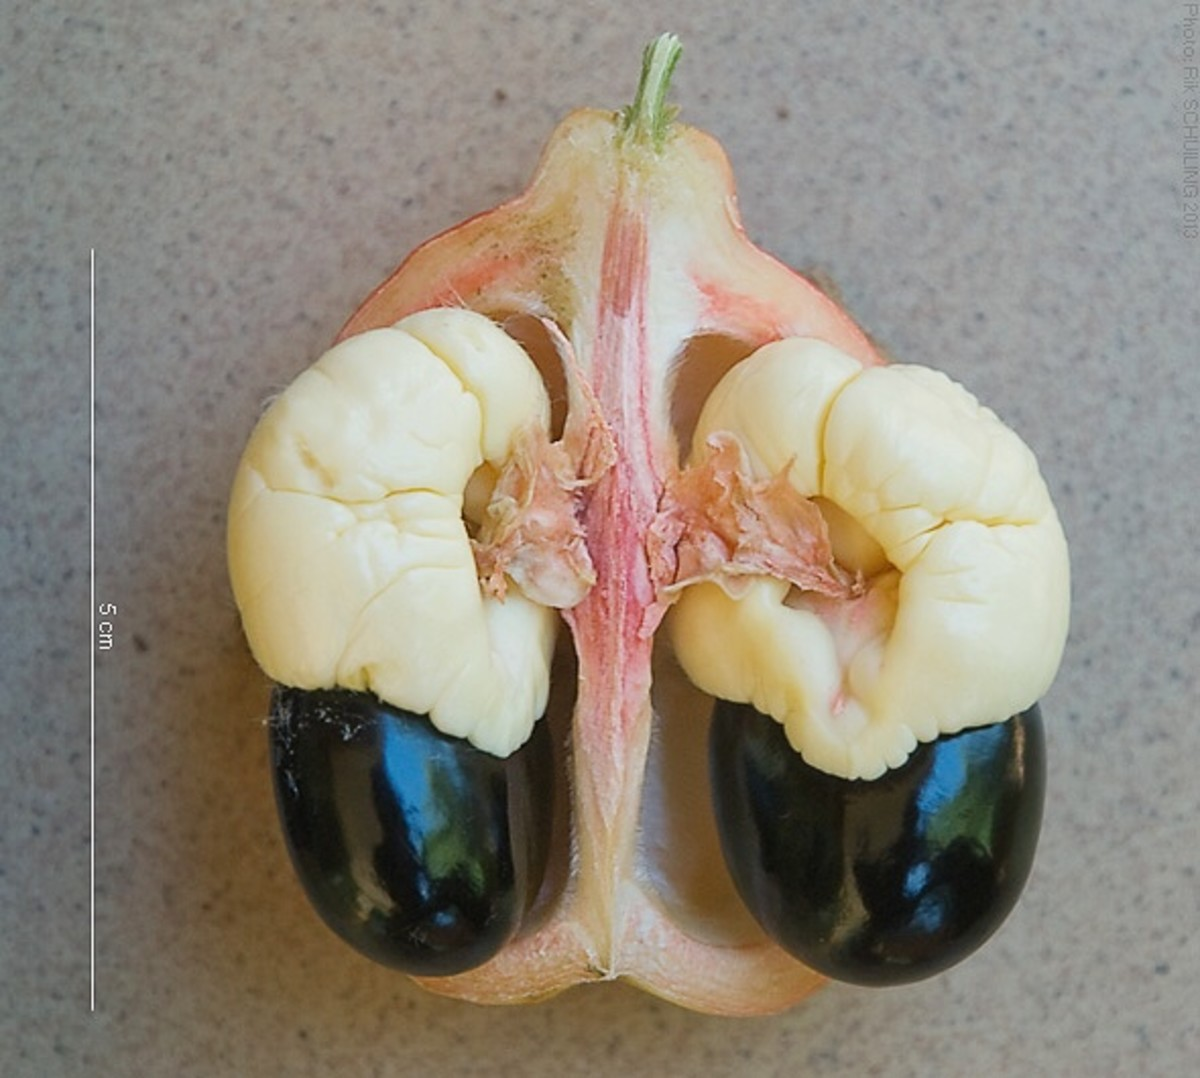 The dark seeds and the pink membrane must be removed before the aril is cooked.